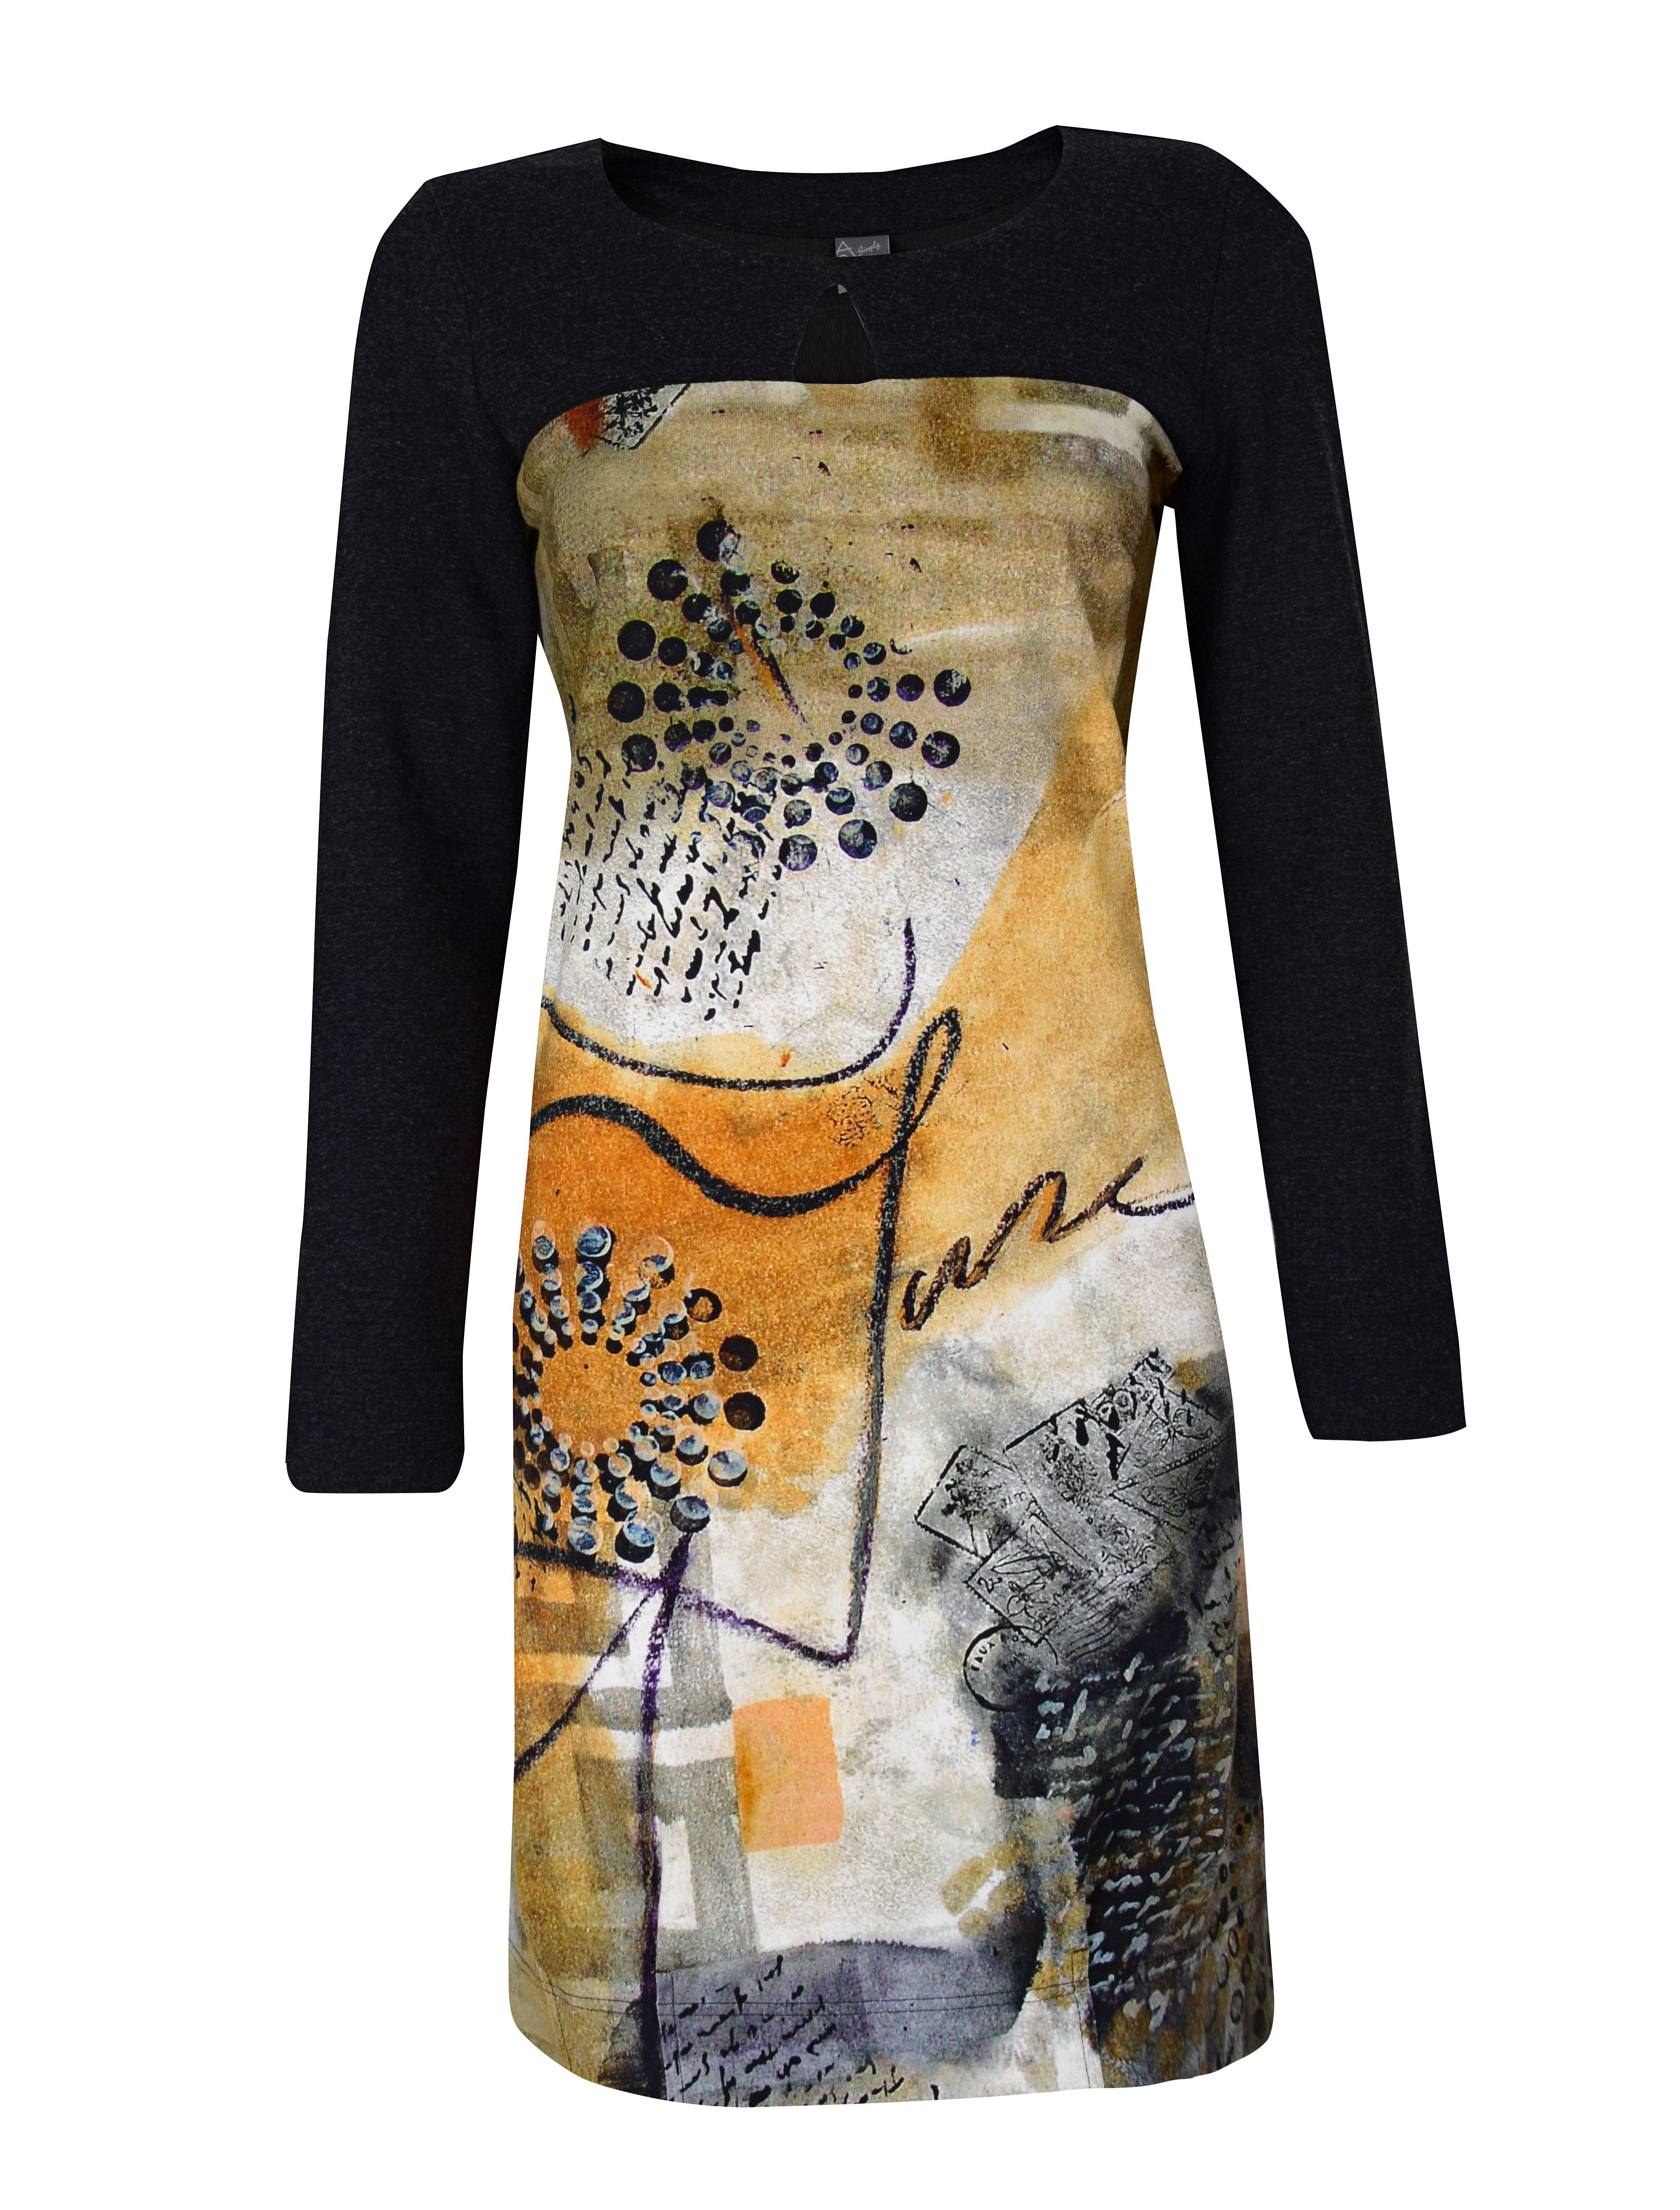 Simply Art Dolcezza: Romantic Rhythm Quilled Abstract Art Dress (1 Left!)